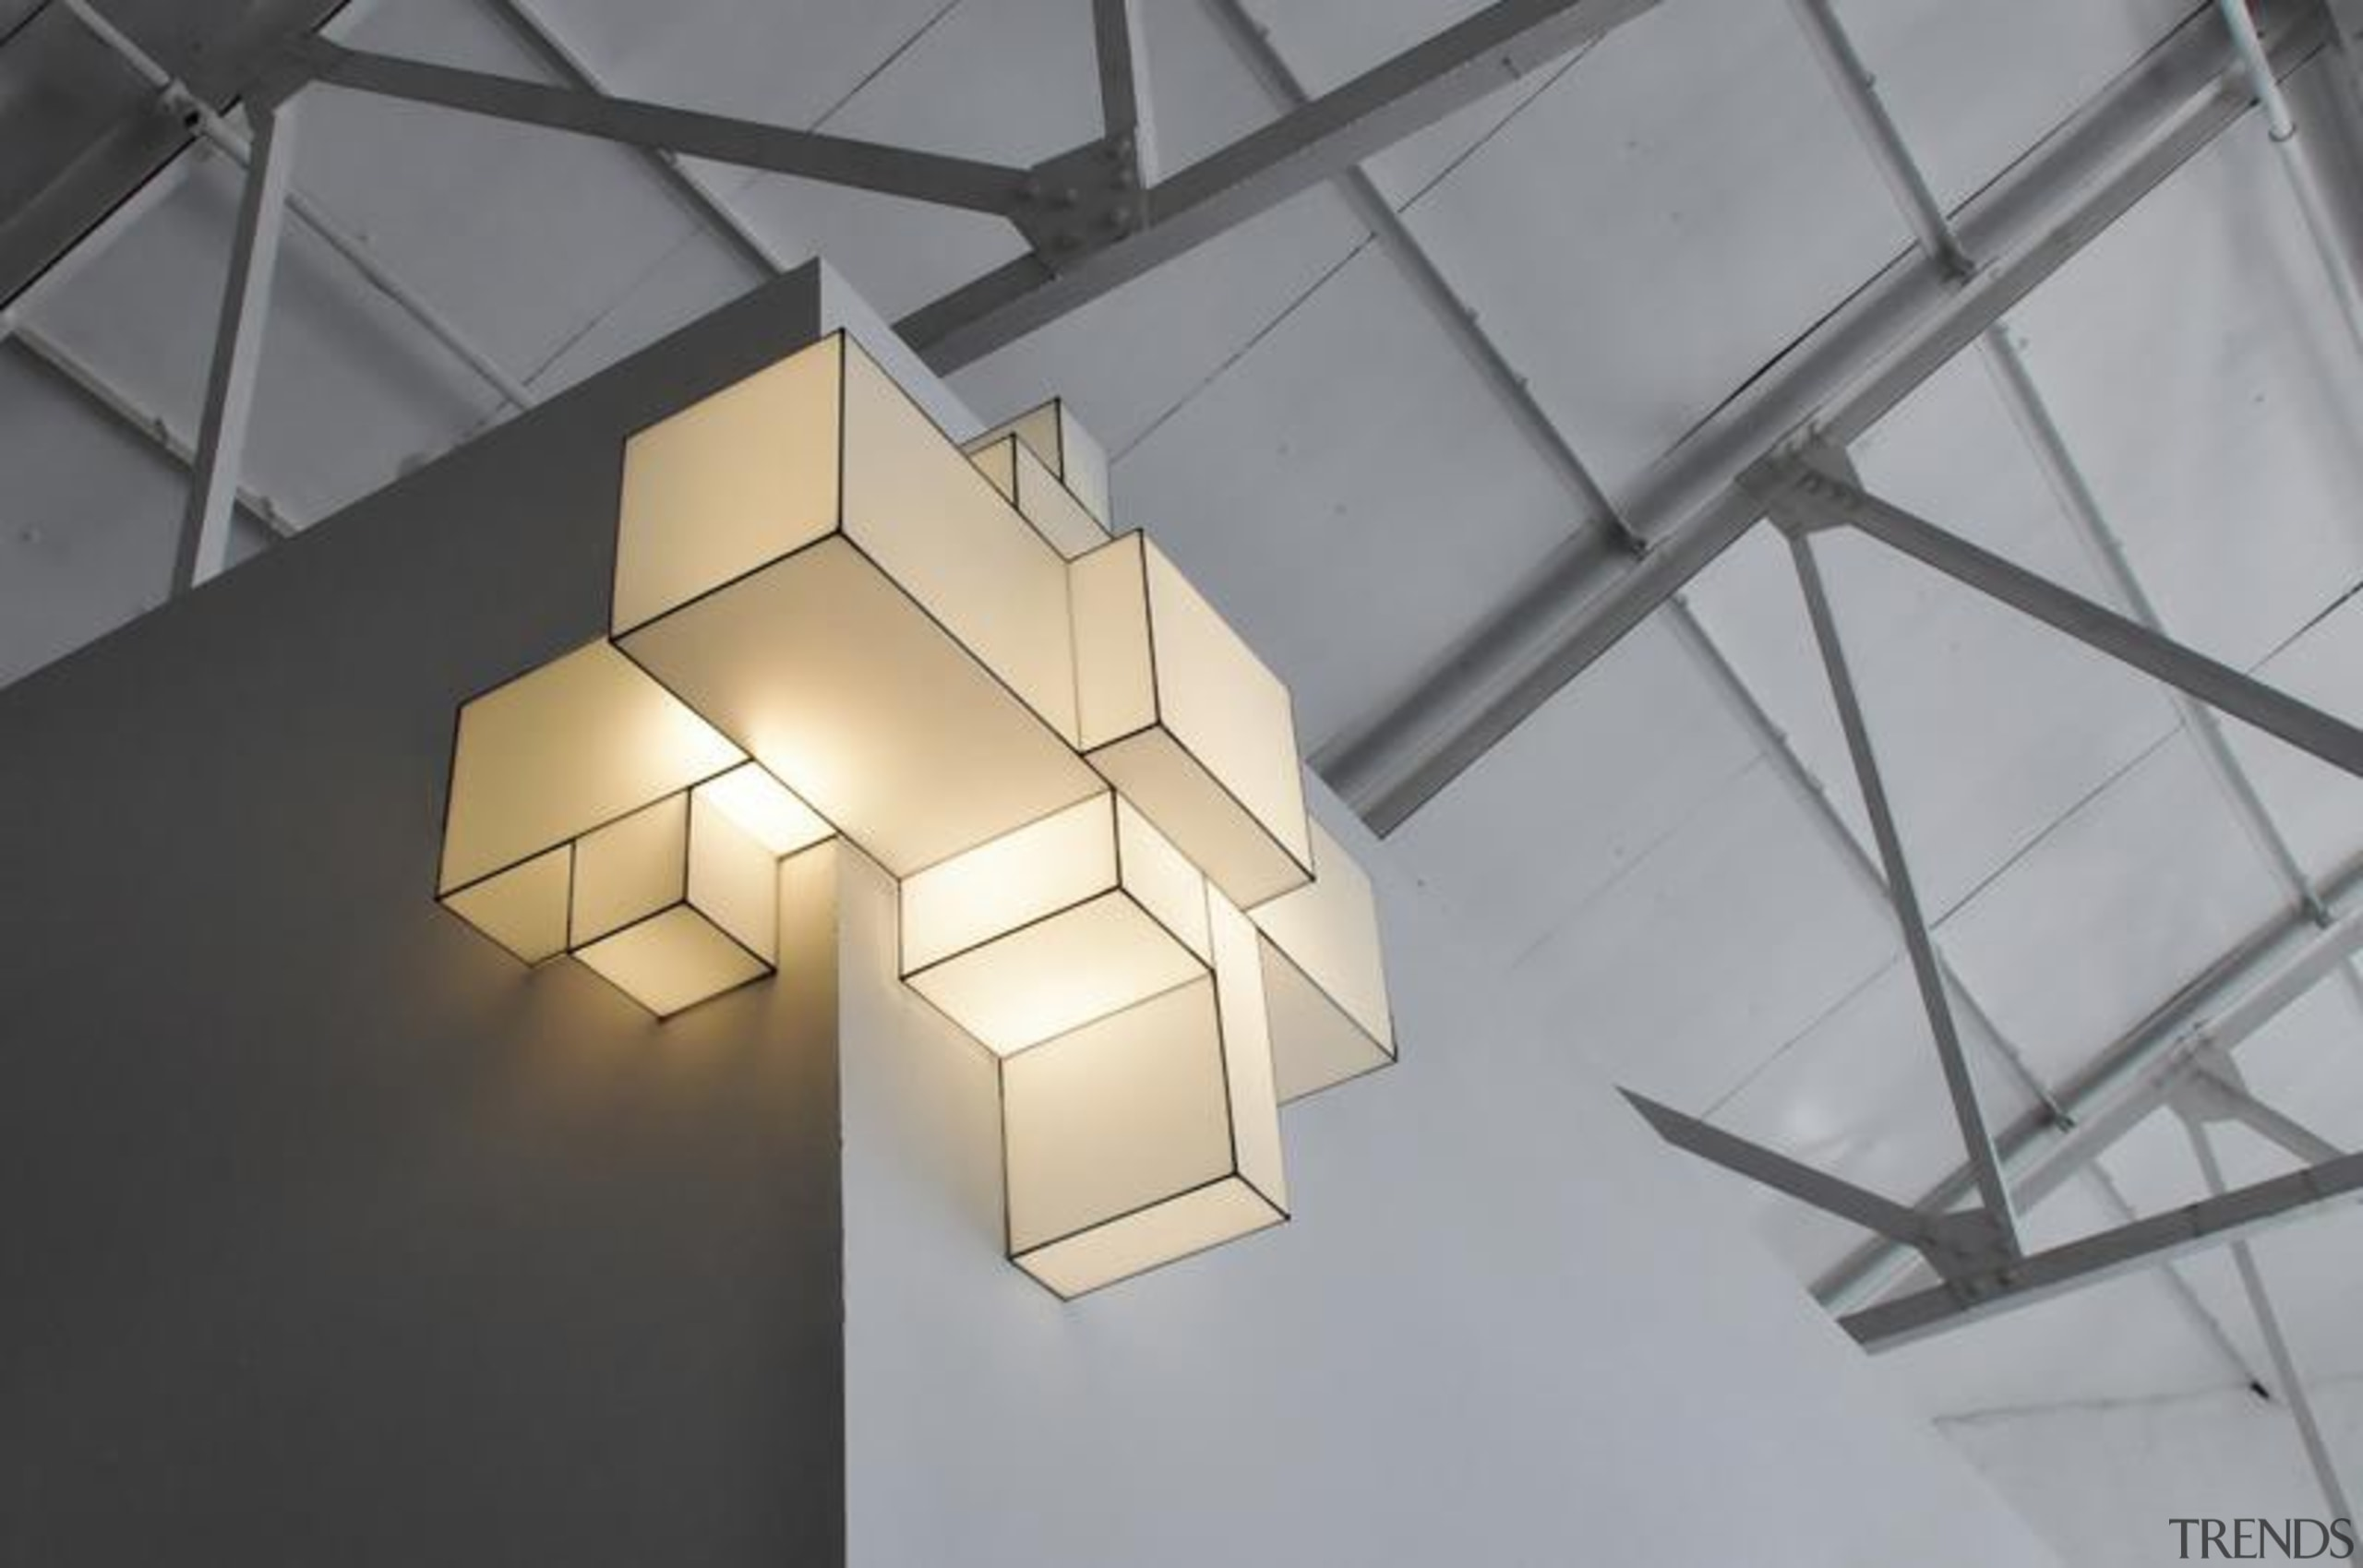 These clean-lined lampshades elegantly merge sculpture and illumination.What architecture, ceiling, daylighting, lampshade, light, light fixture, lighting, lighting accessory, product design, structure, gray